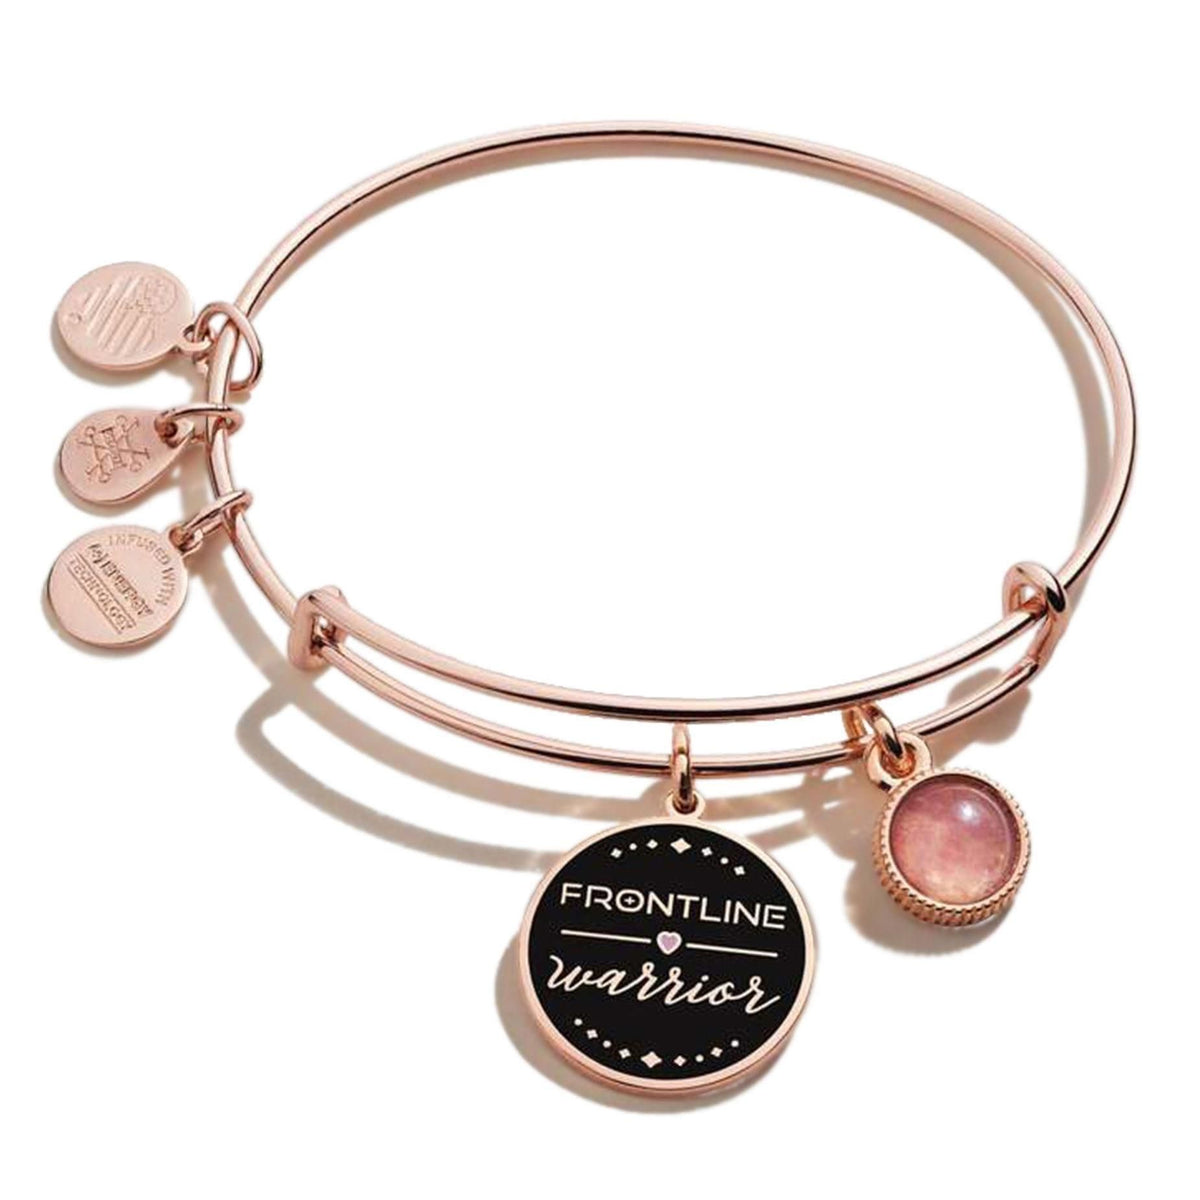 ALEX AND ANI Frontline Warrior Bangle Bracelet